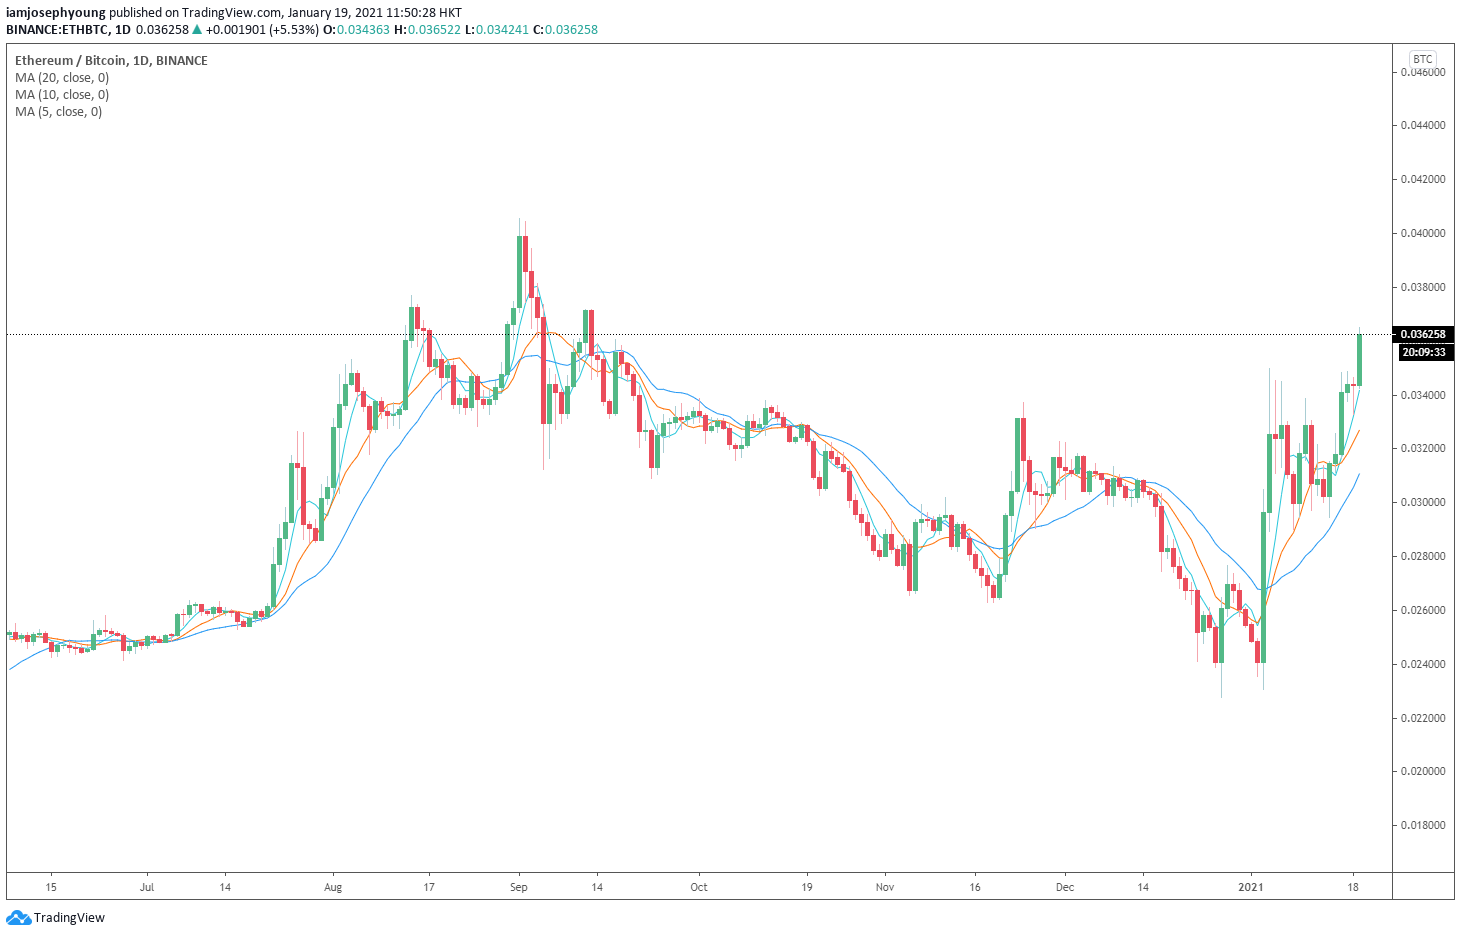 ETH/BTC 1-day price chart (Binance). Source: TradingView.com